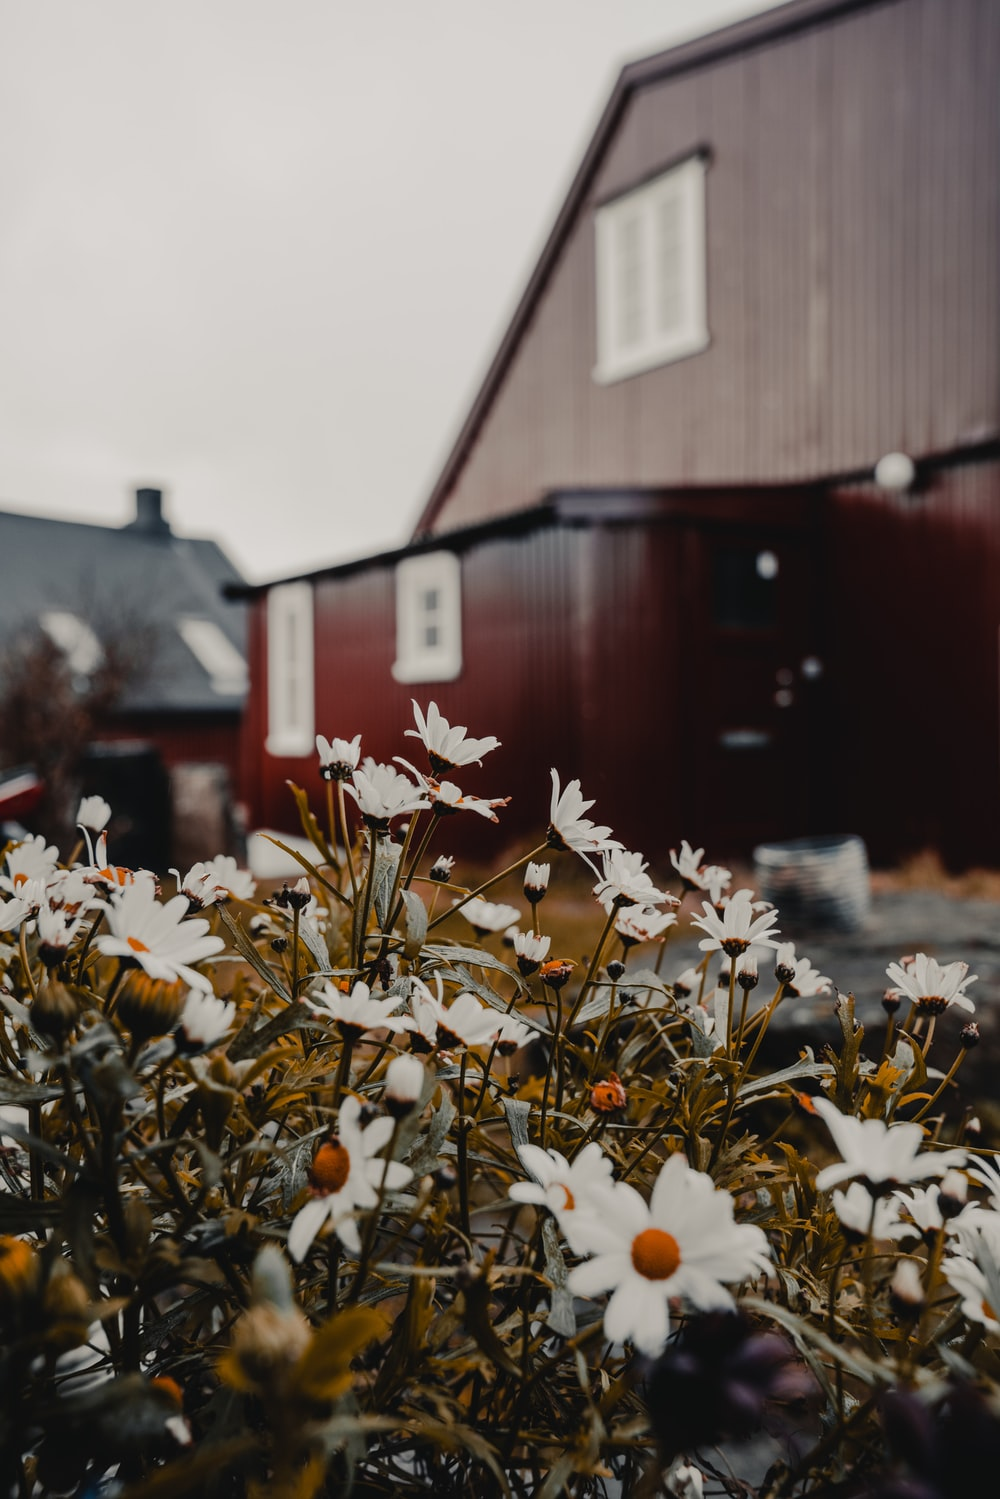 macro photography of white daisies beside building during daytime